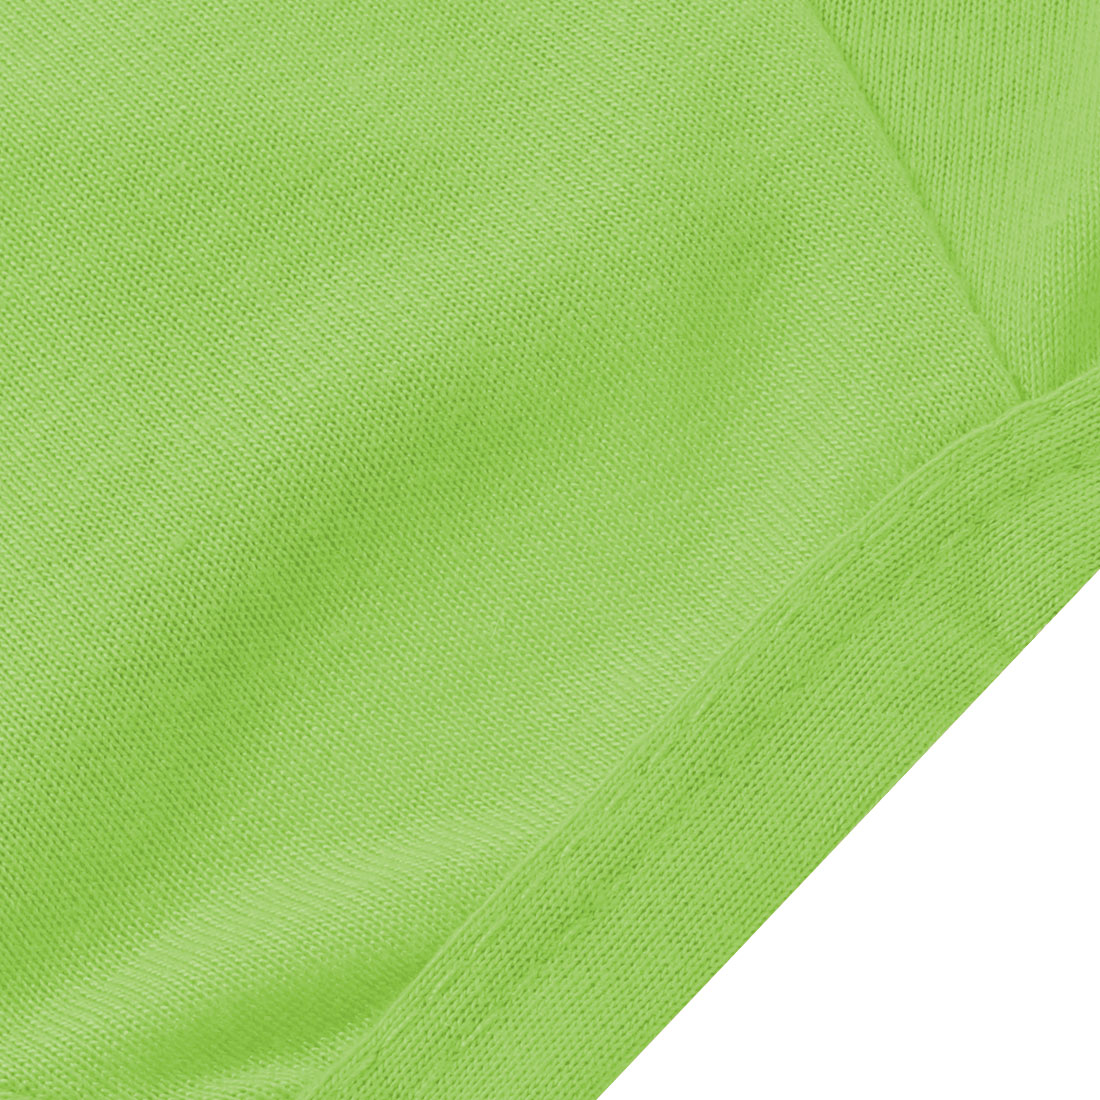 Pet Dog Cotton Blend Summer Short Sleeve T-Shirt Vest Clothes Green Size XL - image 3 of 4